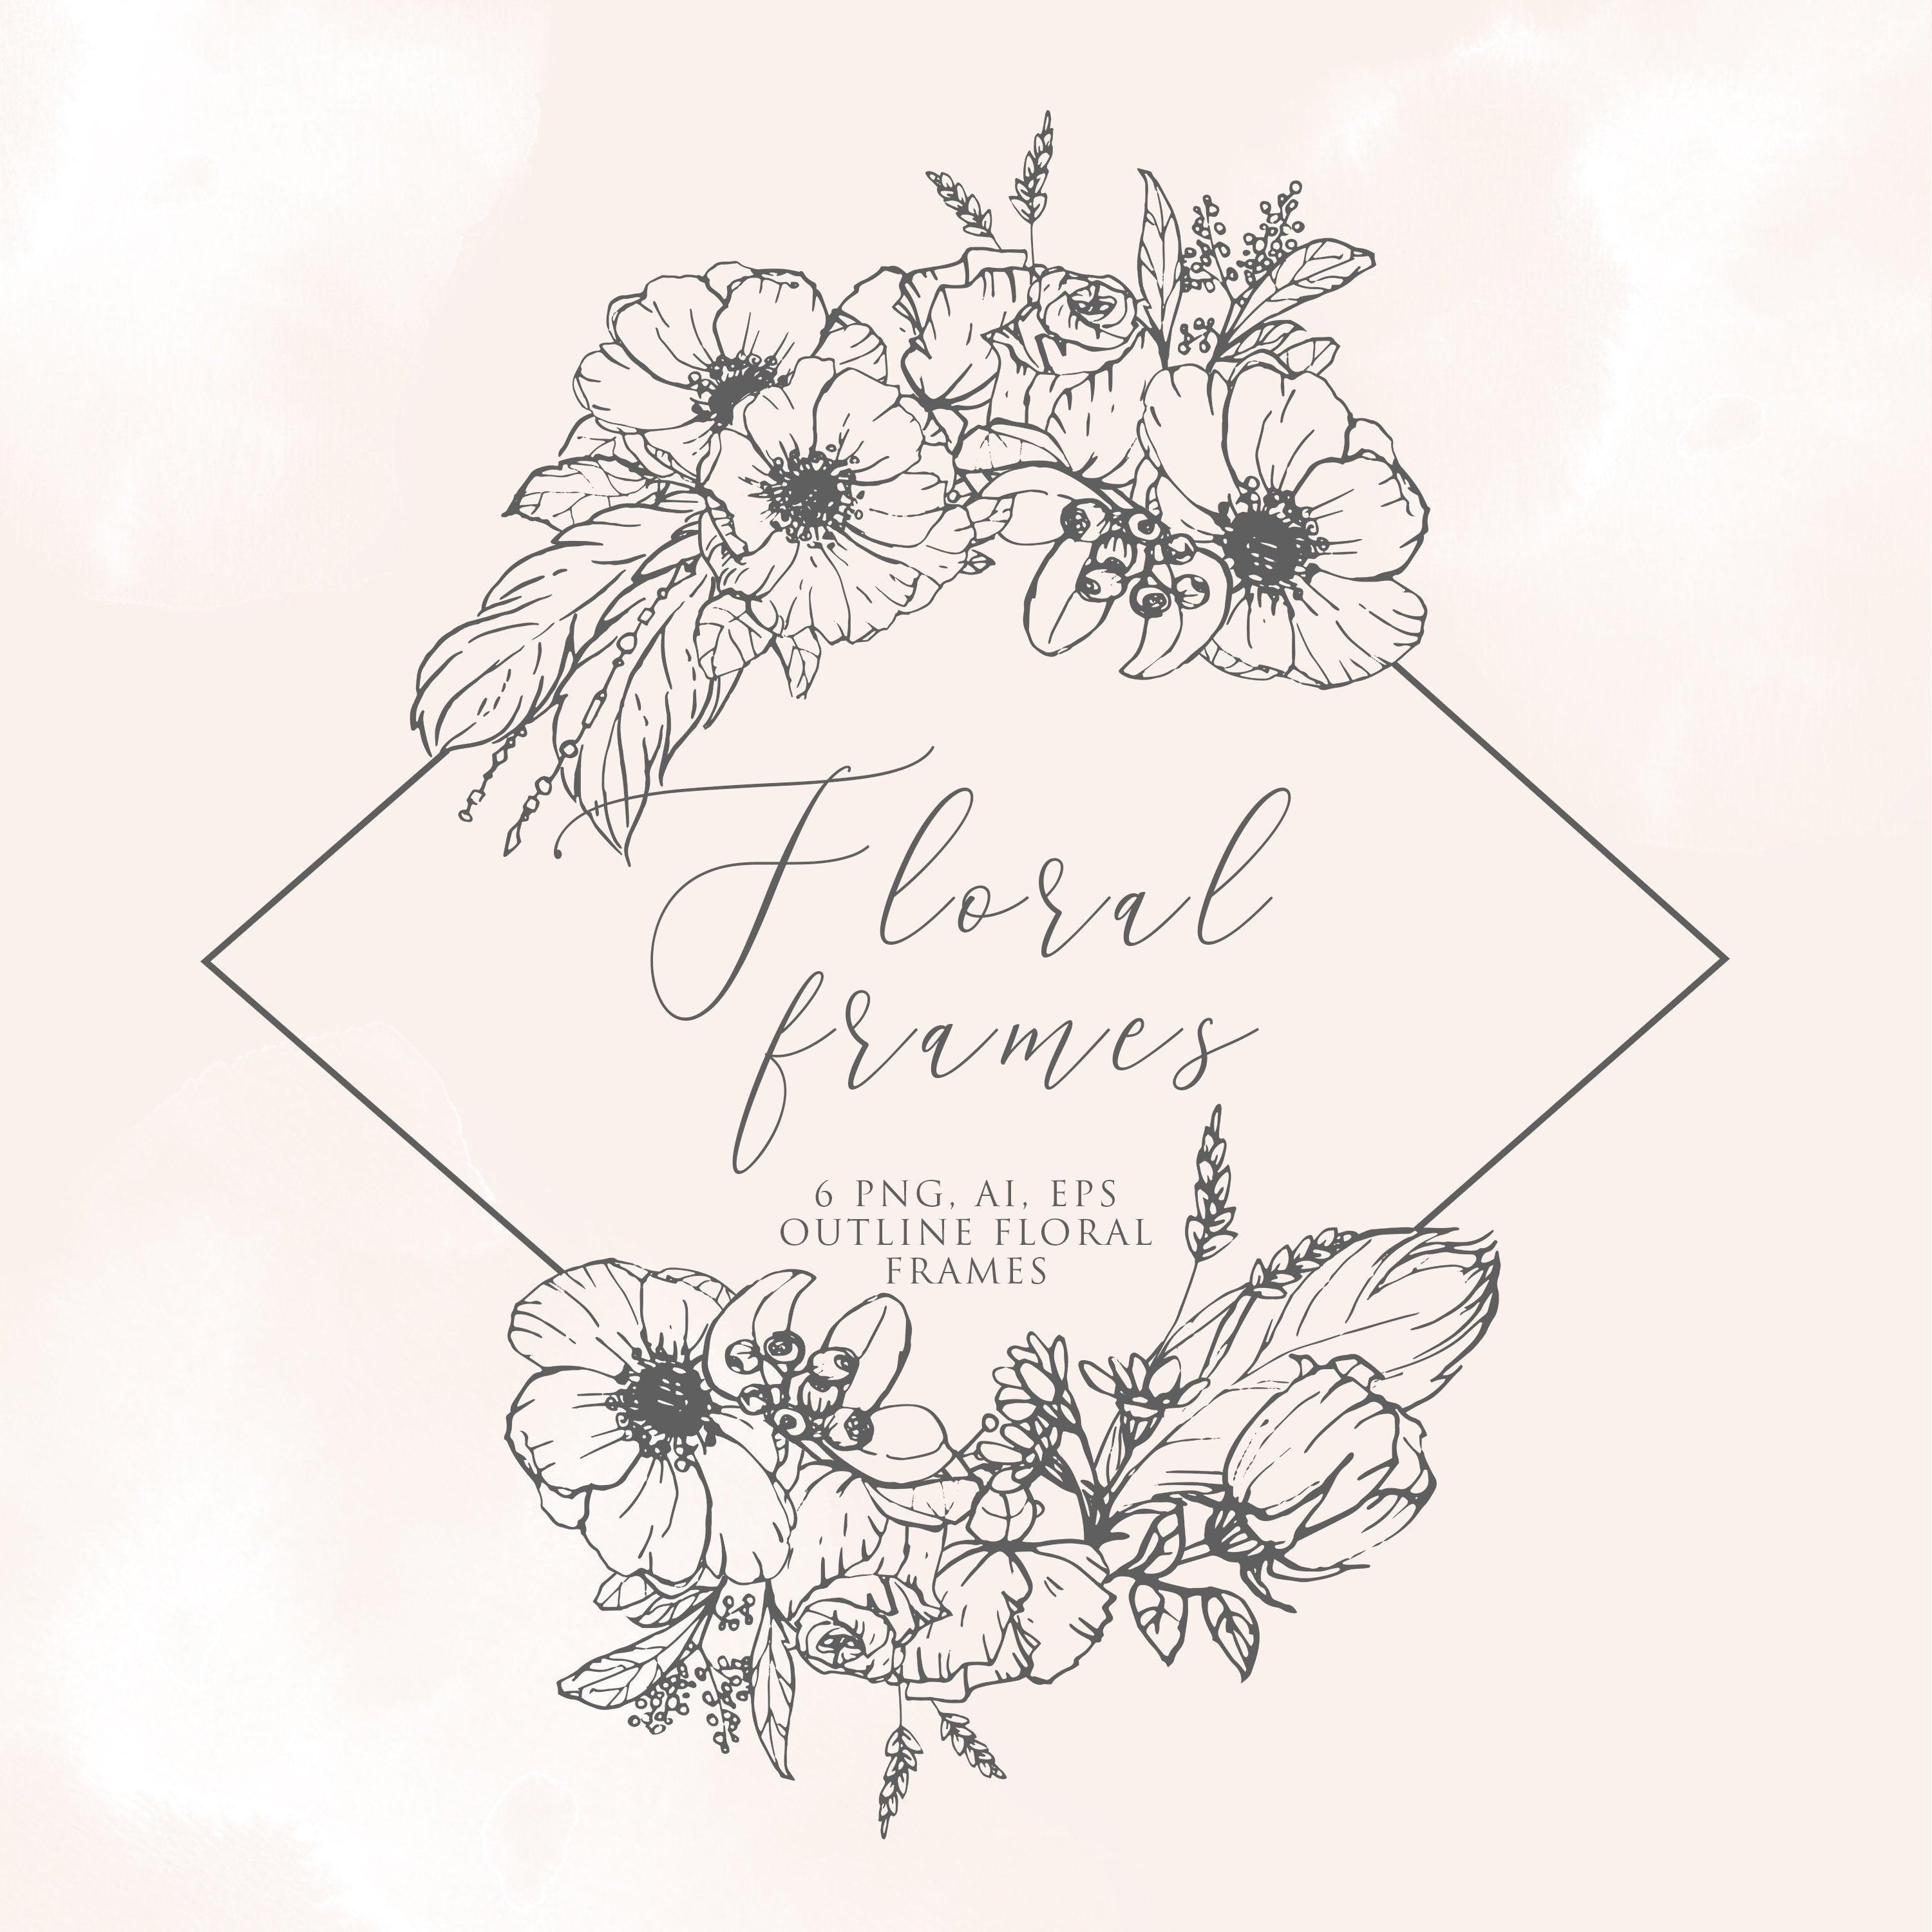 Floral Frame PNG for weddings Floral Wreath Clip Art Commercial Use logo design cute stationery /& other product creation #IMPERIAL1